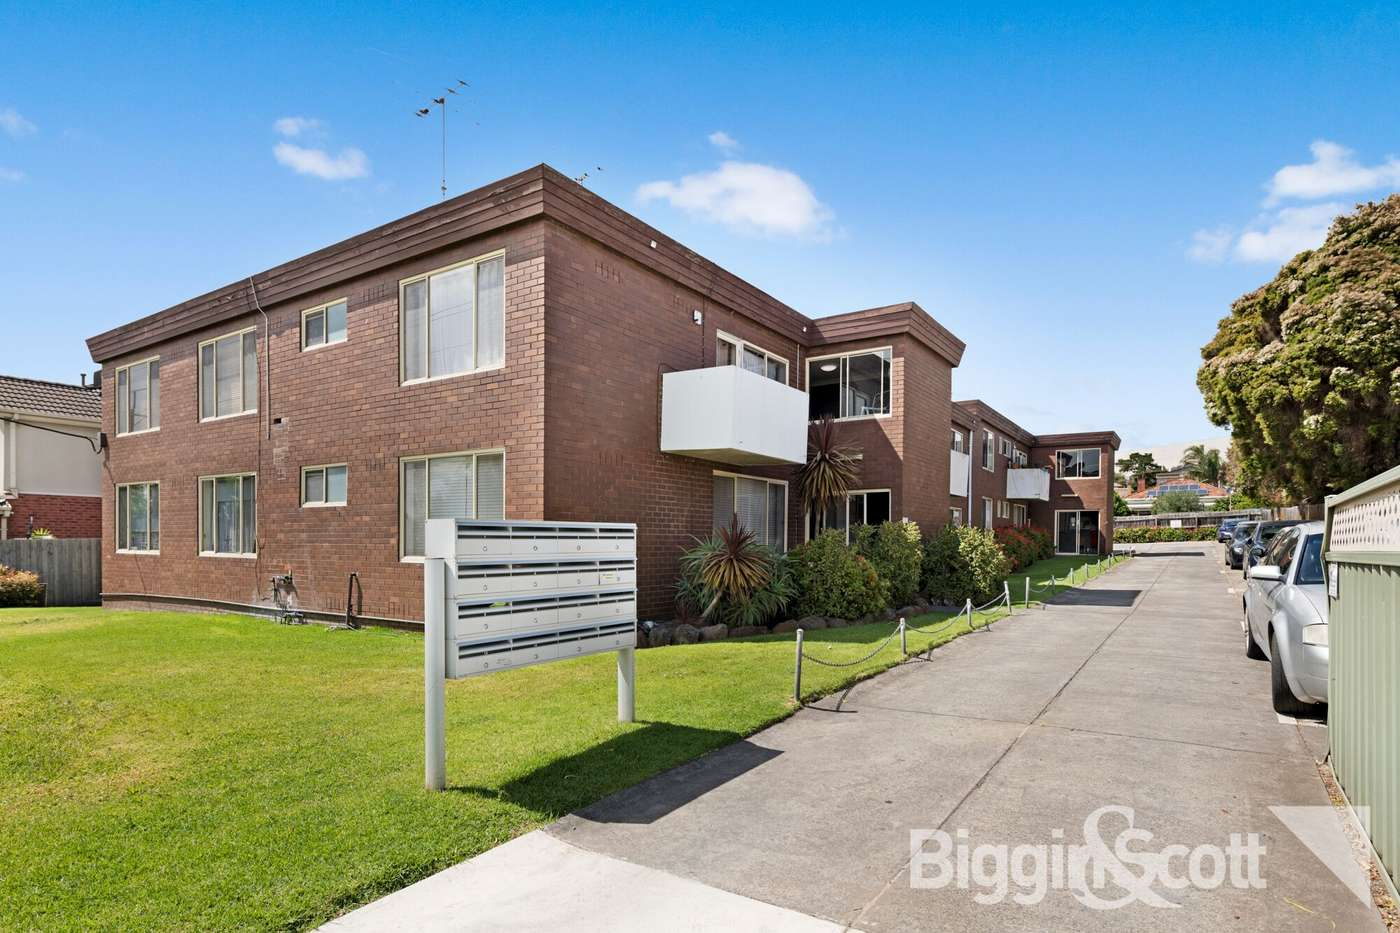 Main view of Homely apartment listing, 16/97-99 Raleigh Road, Maribyrnong, VIC 3032